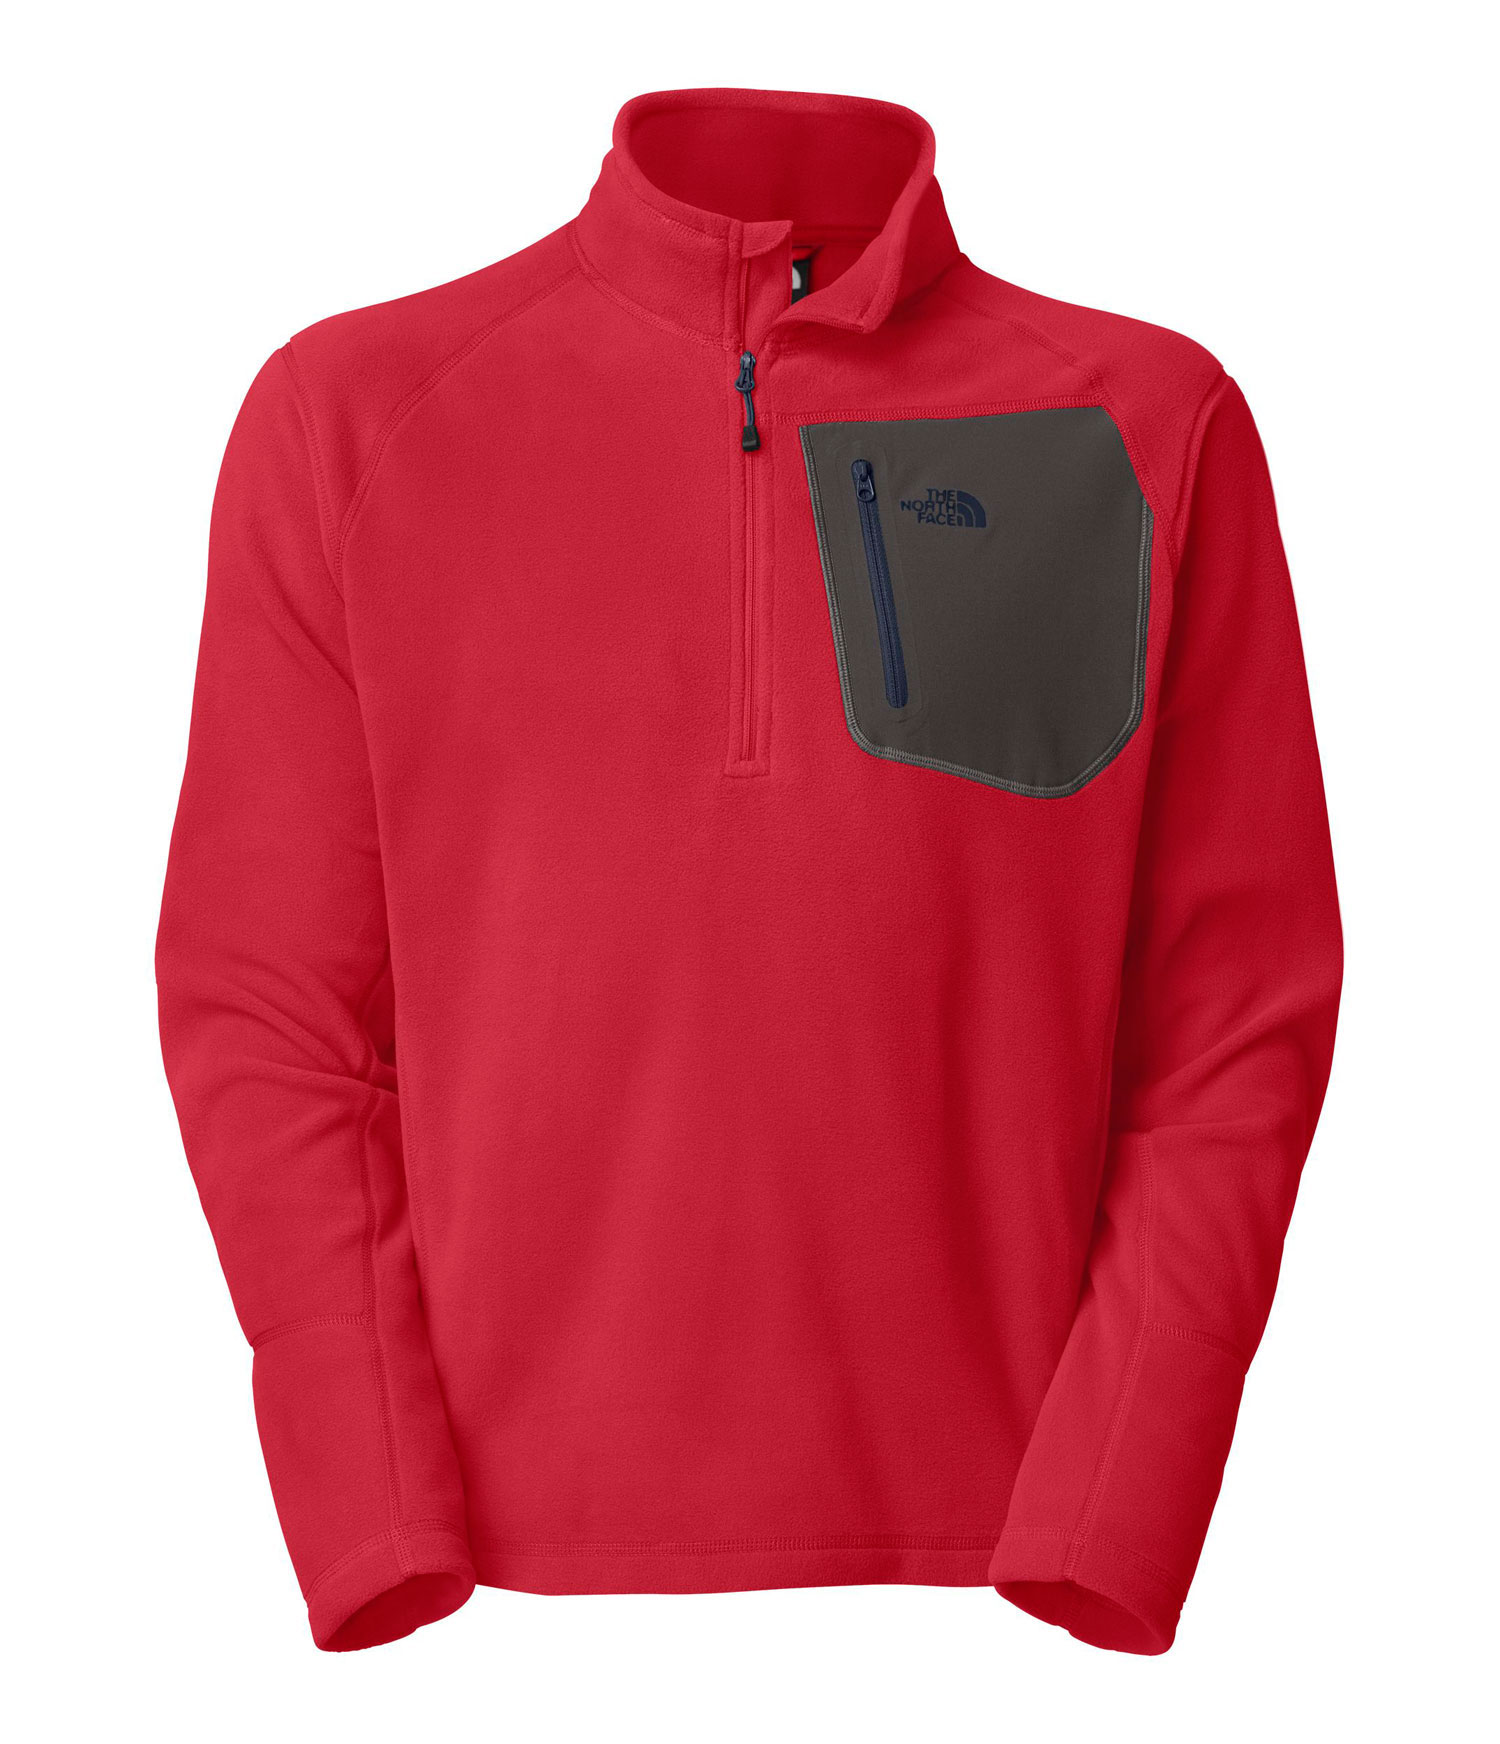 "A breathable, quick-drying midweight zip-neck constructed with Polartec fleece ideal for layering. Key Features of The North Face Tka 100 Trinity Alps 1/4 Zip Jacket: Fabric: 160 g/m (4.64 oz/yd ) 100% polyester Center Back: 27.5"" Midweight layering piece Ultraviolet Protection Factor (UPF) ??? Secure Napoleon zip pocket Flat-locked stitching for strength and reduced abrasion Reverse-coil zips for finished look - $48.95"